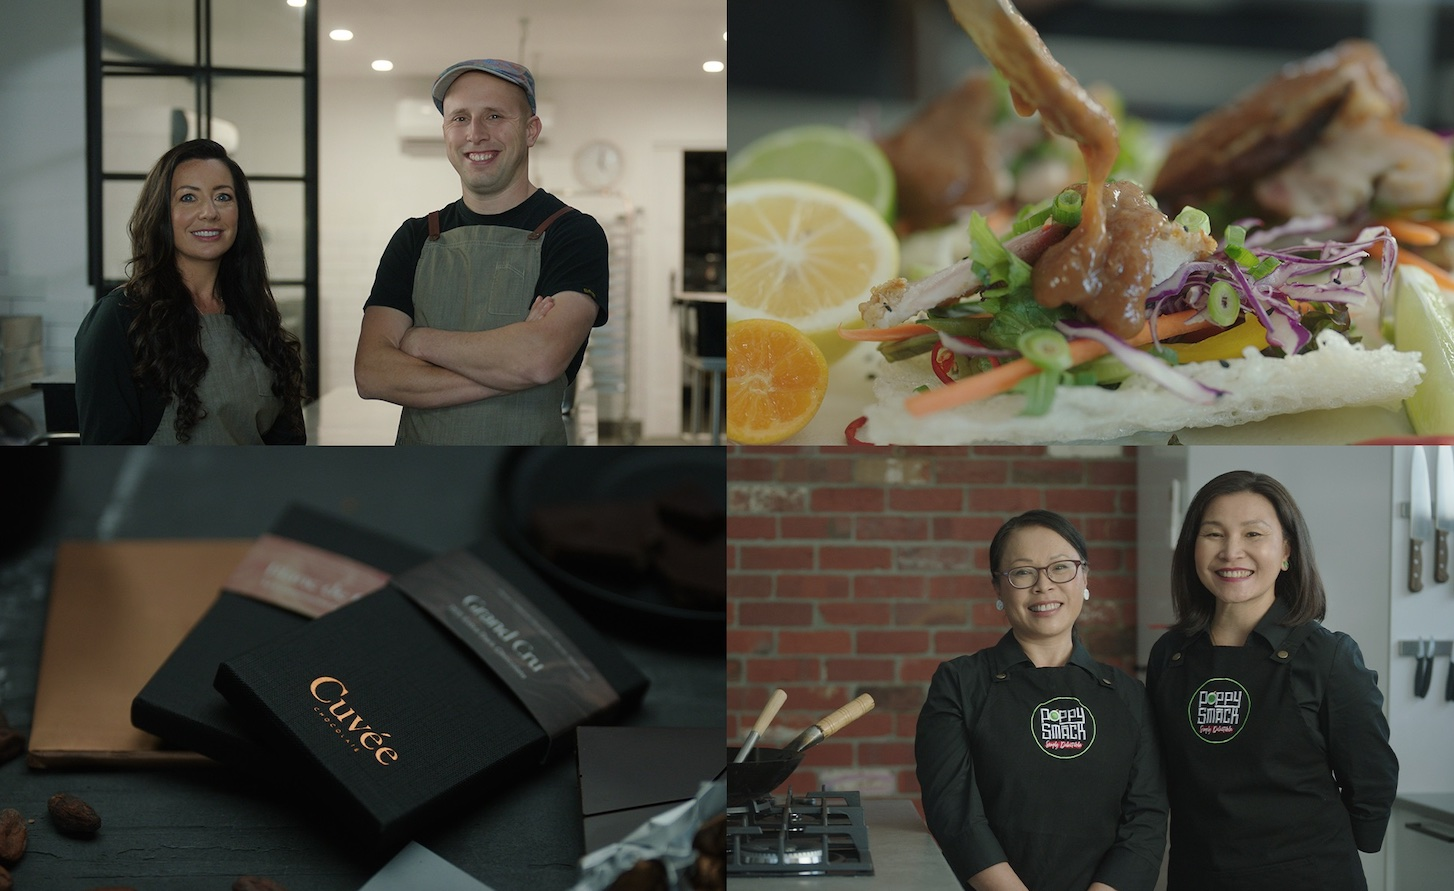 AAMI is backing small business in new 'AAMI Does' campaign via Ogilvy Melbourne